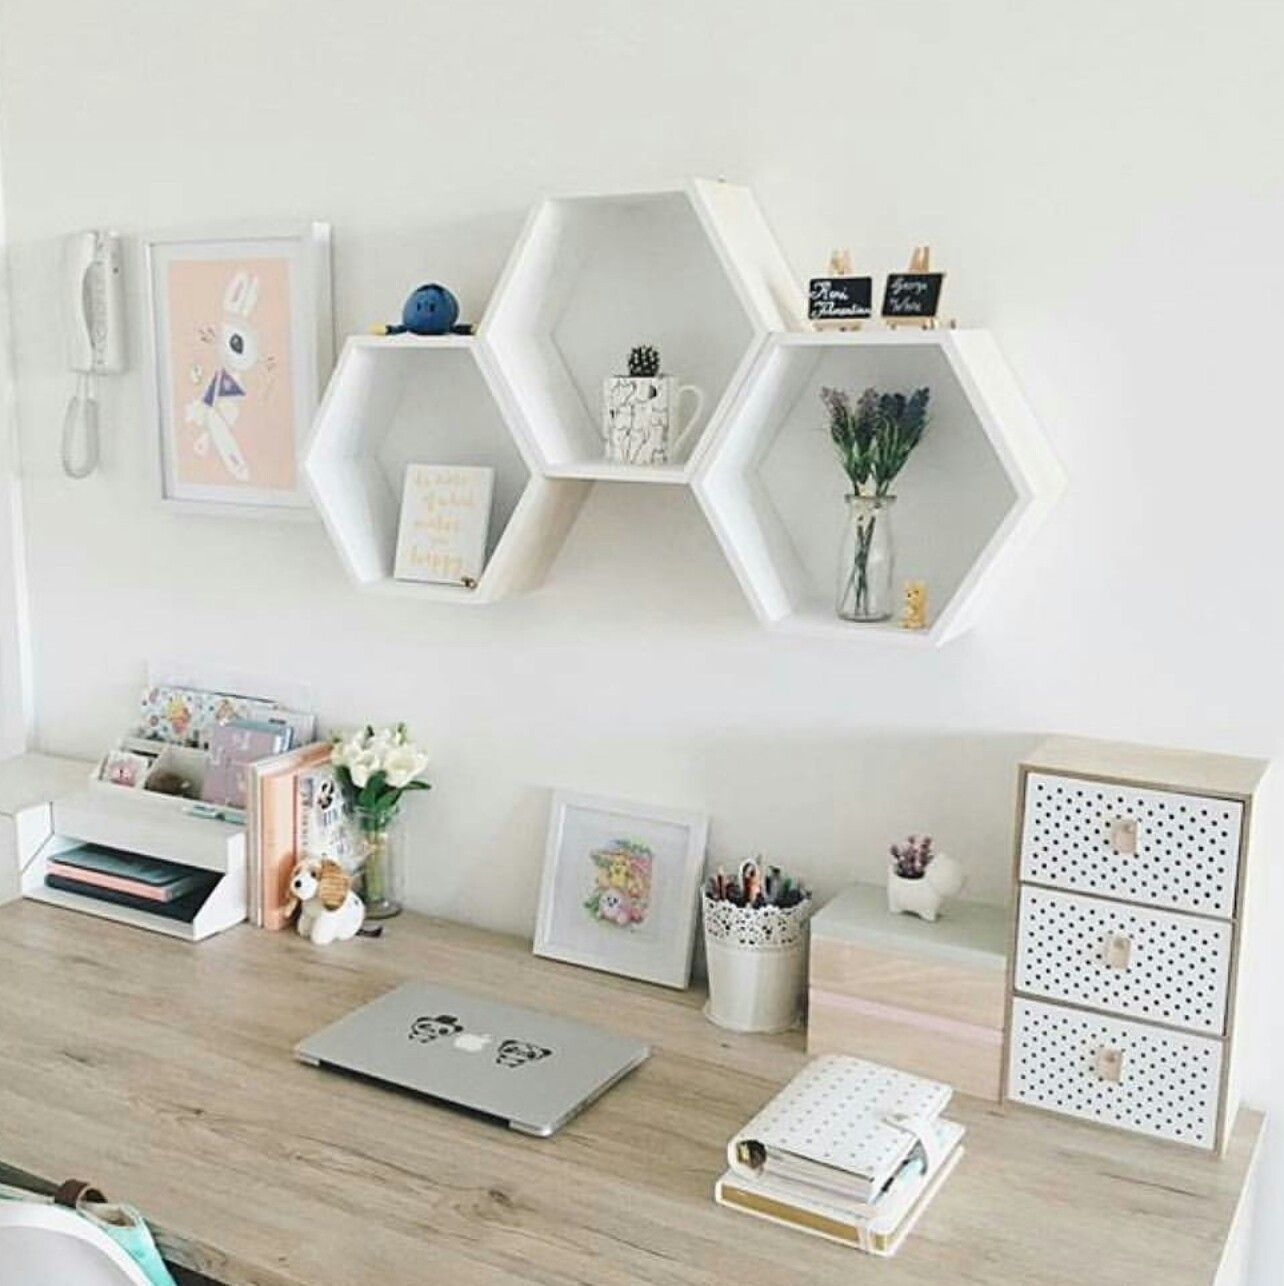 Home decoration deco office minimalist work minimal Decoracion de espacios de trabajo